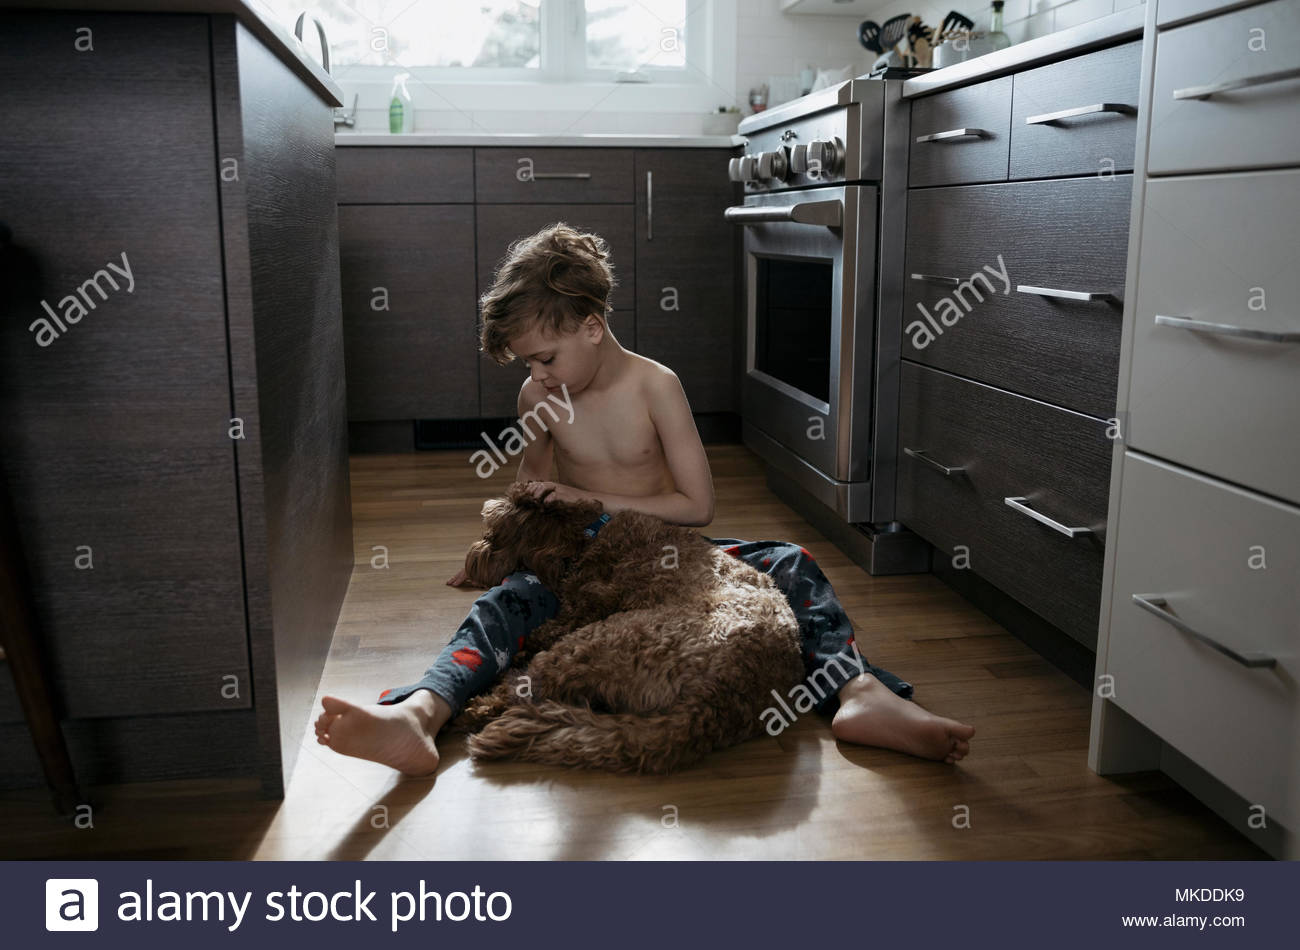 Teens Hot Pettings In The Kitchen